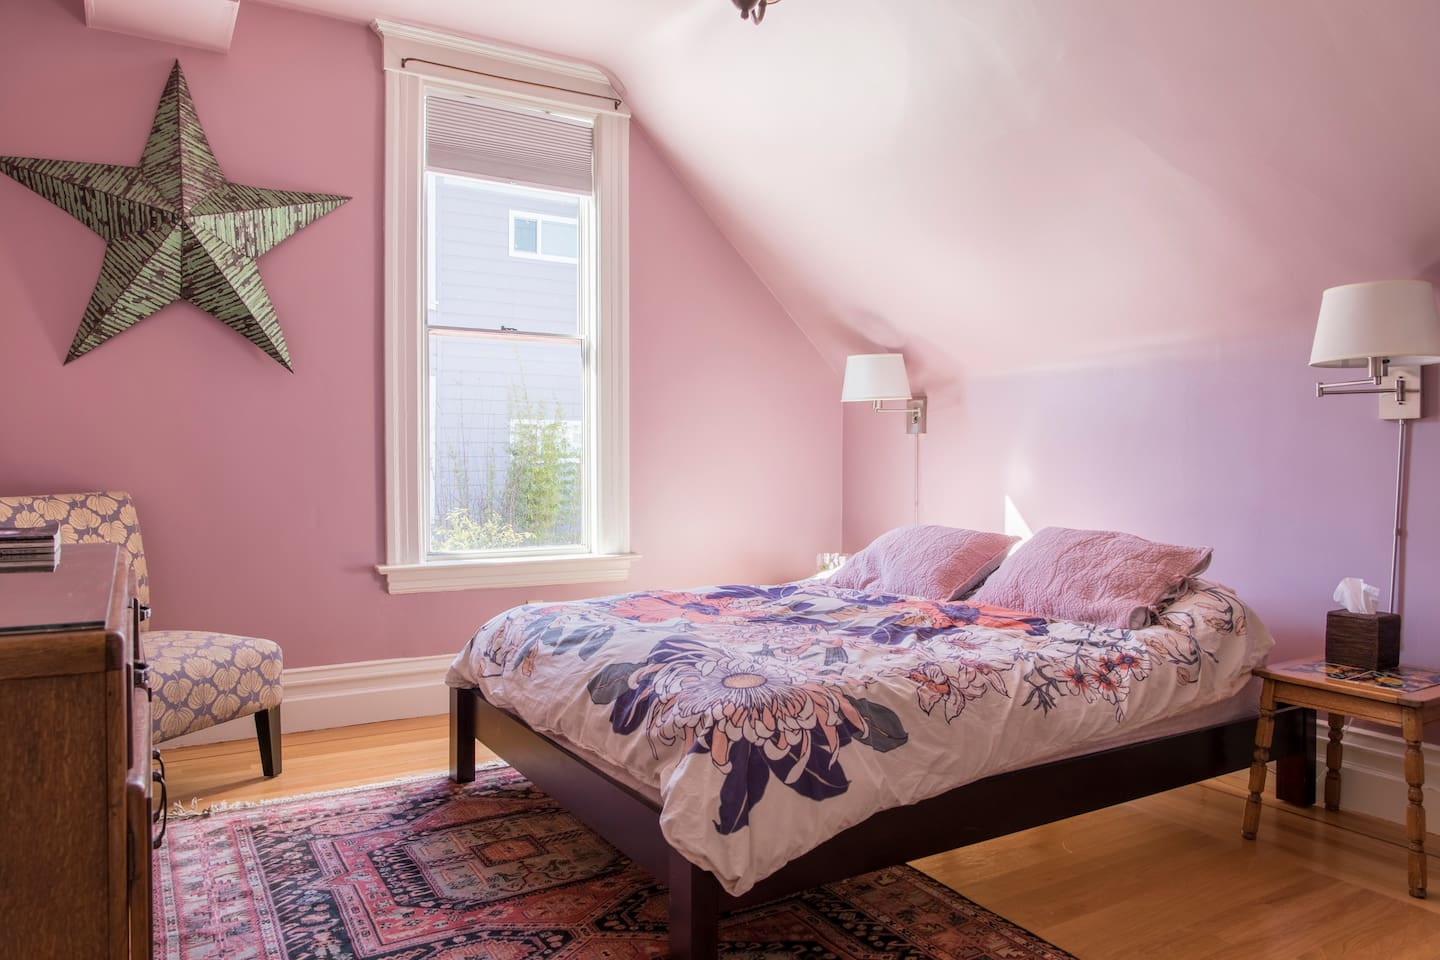 Private Bedroom has Queen-sized bed